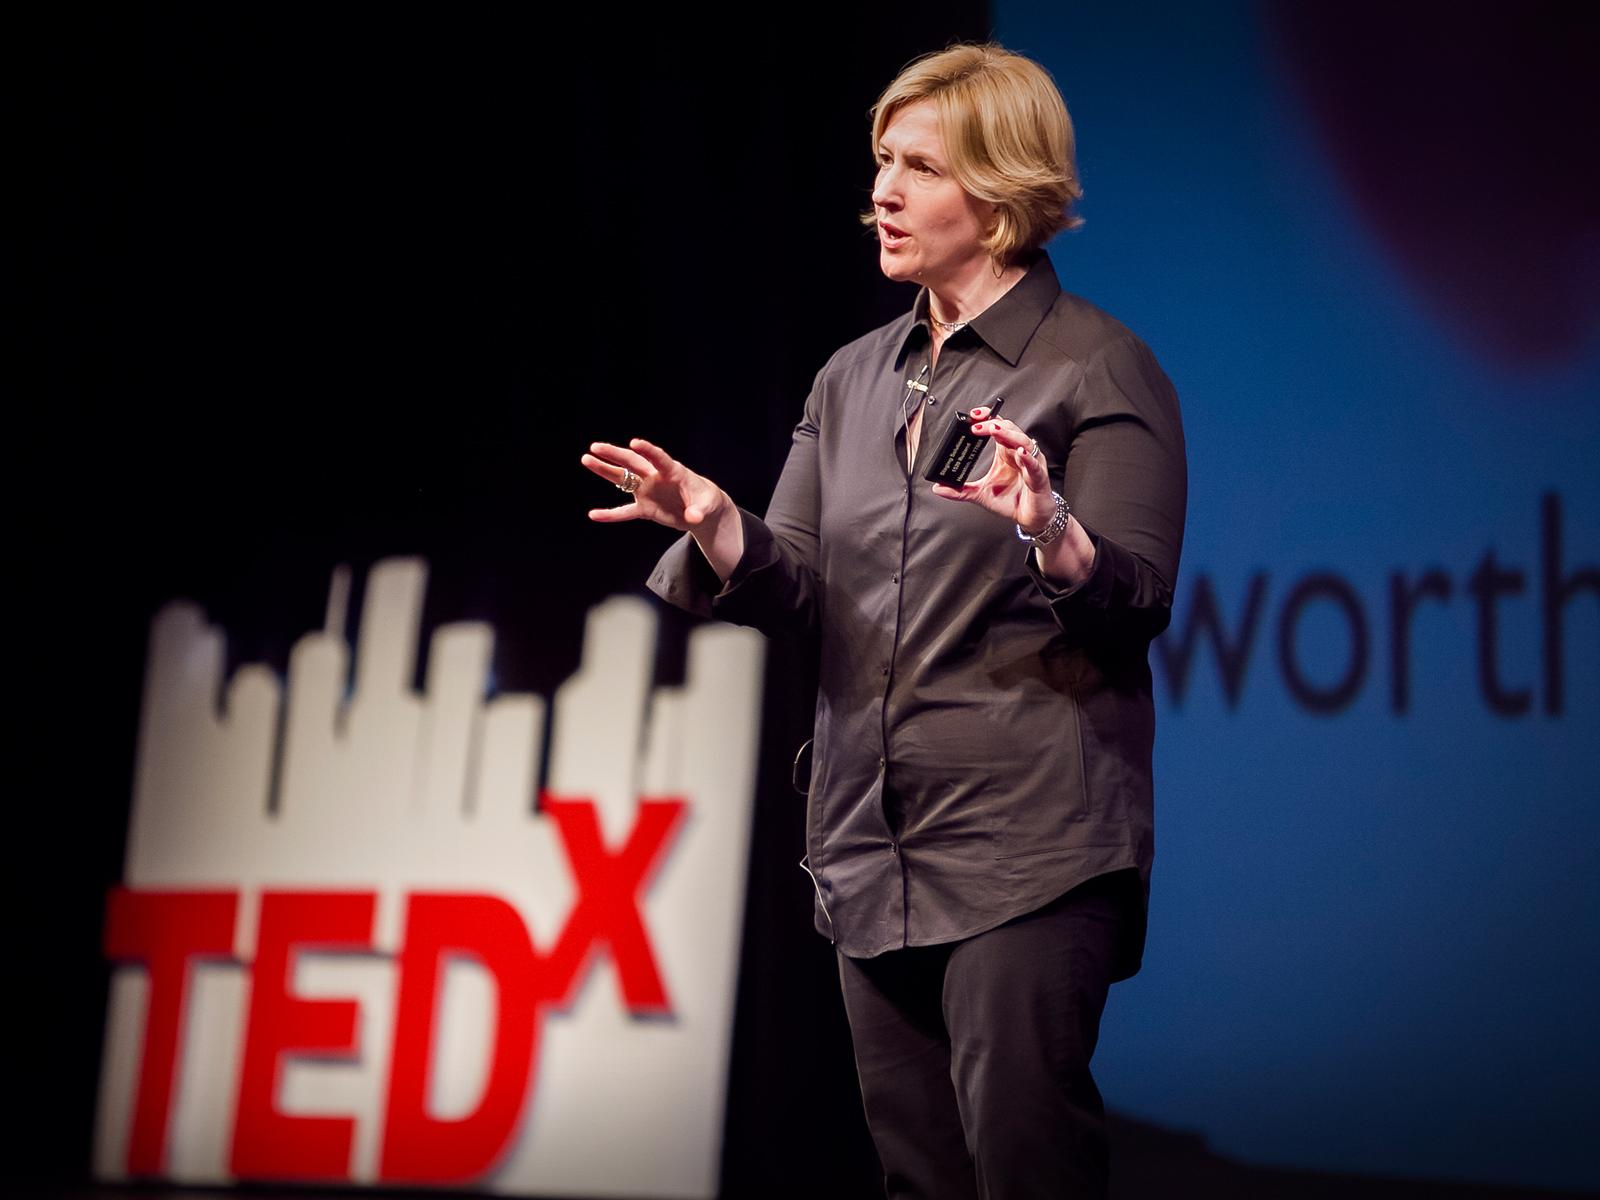 Ted talk relationships happiness